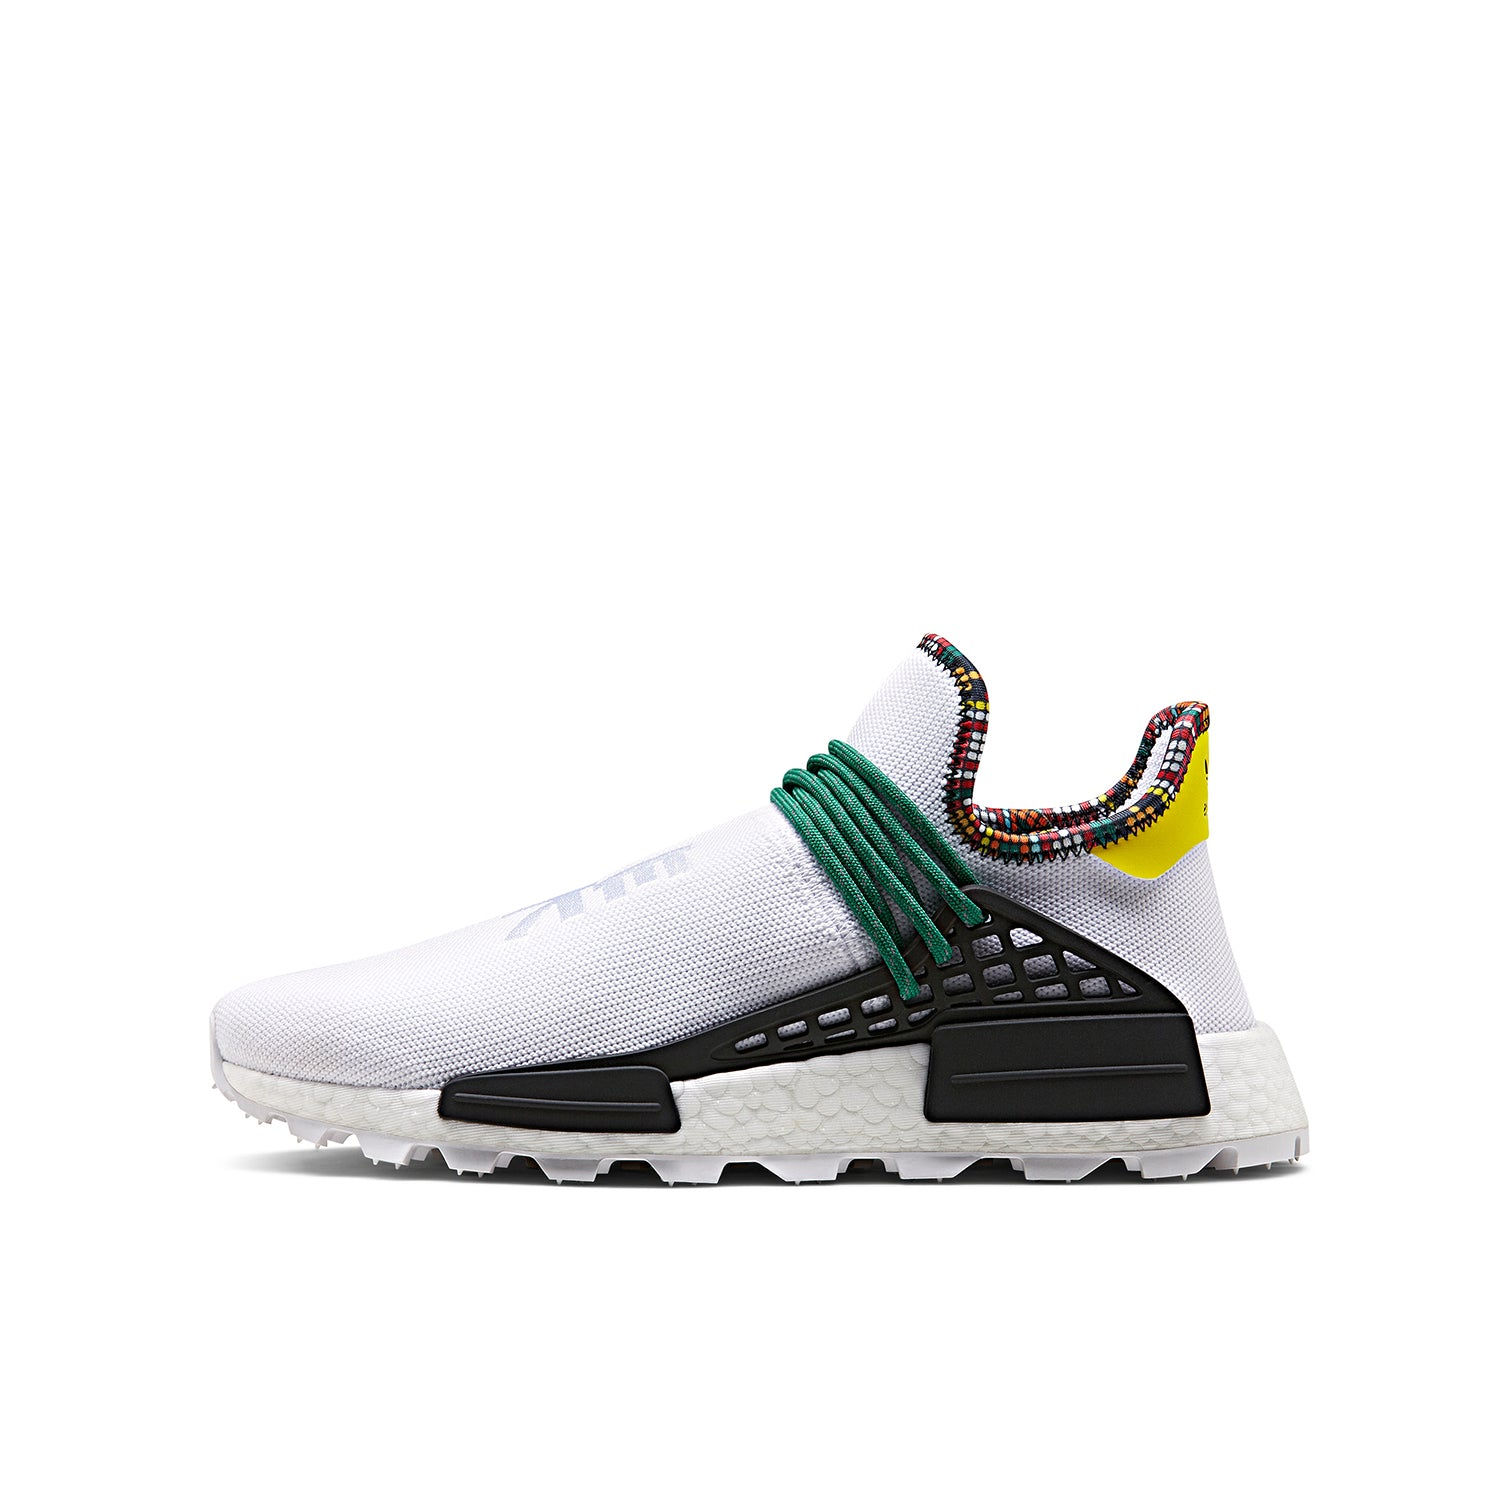 ffb0916c0 adidas Originals x Pharrell Williams  INSPIRATION  Solar HU NMD ...